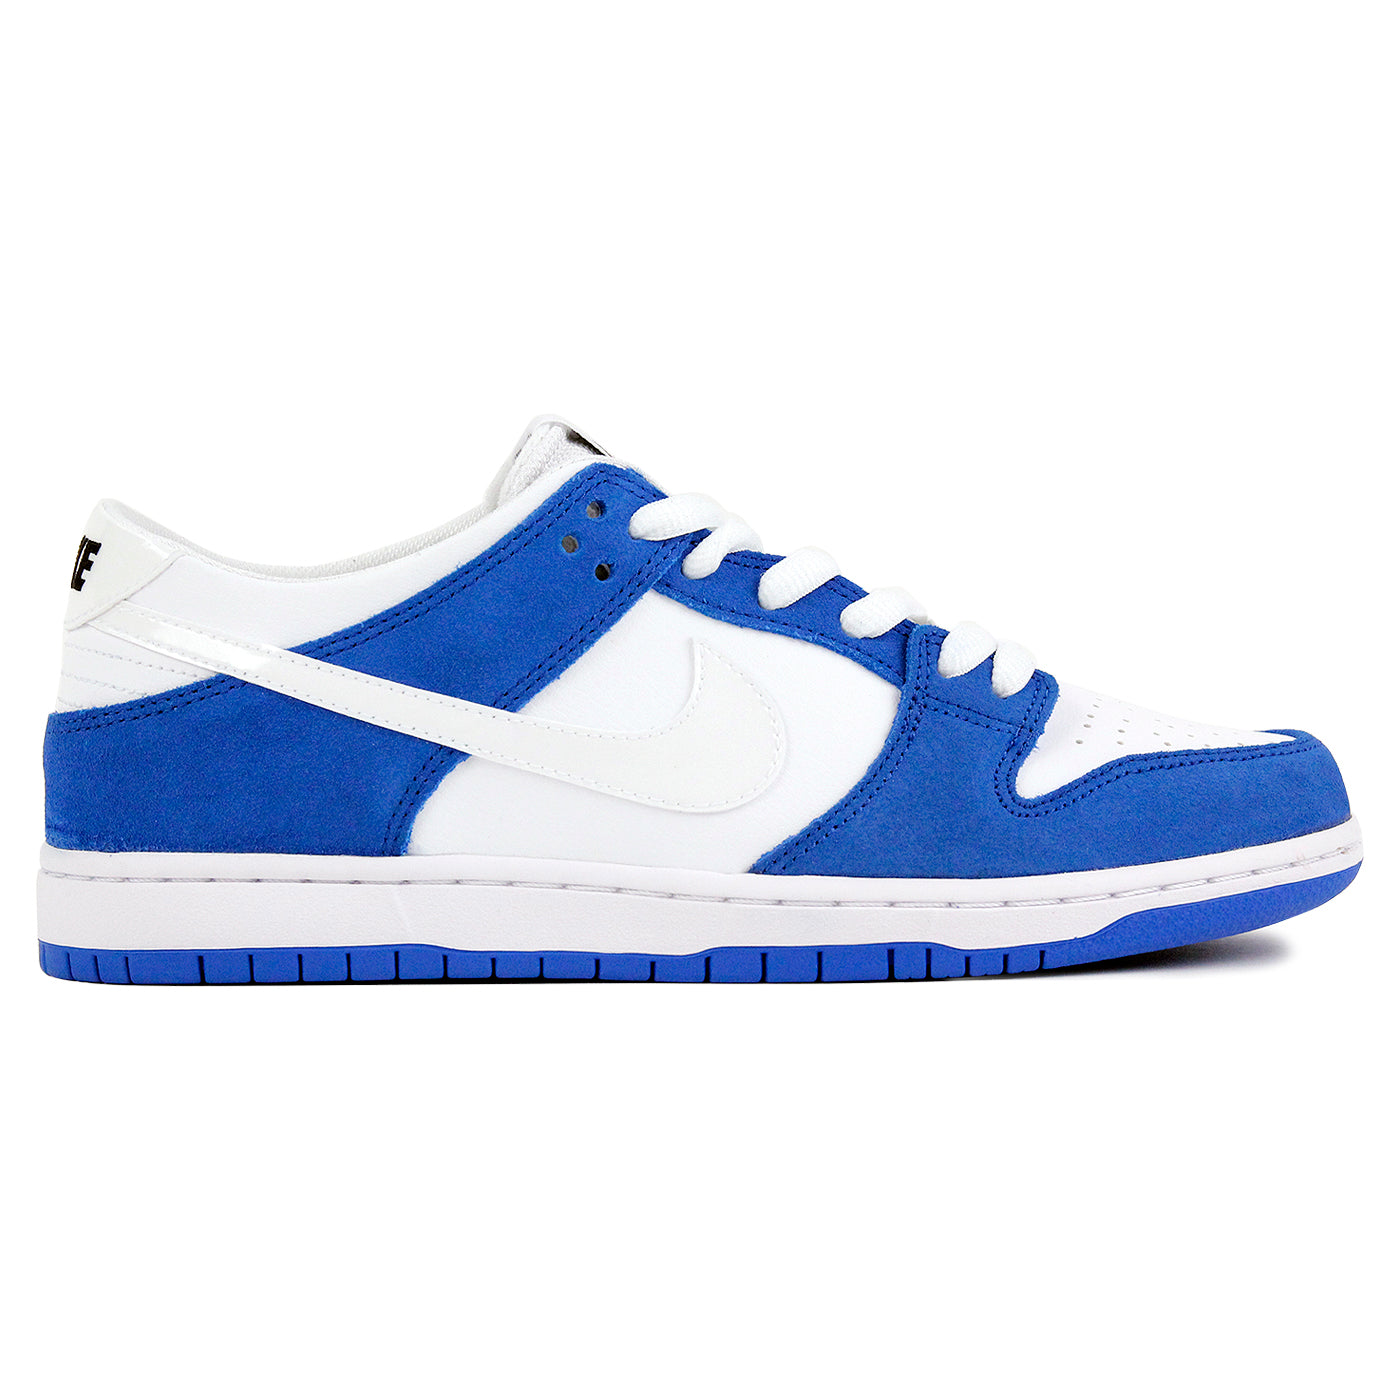 meet a9ab1 85eb1 Dunk Low Pro Ishod Wair Shoes in Blue Spark / White - Black by Nike ...